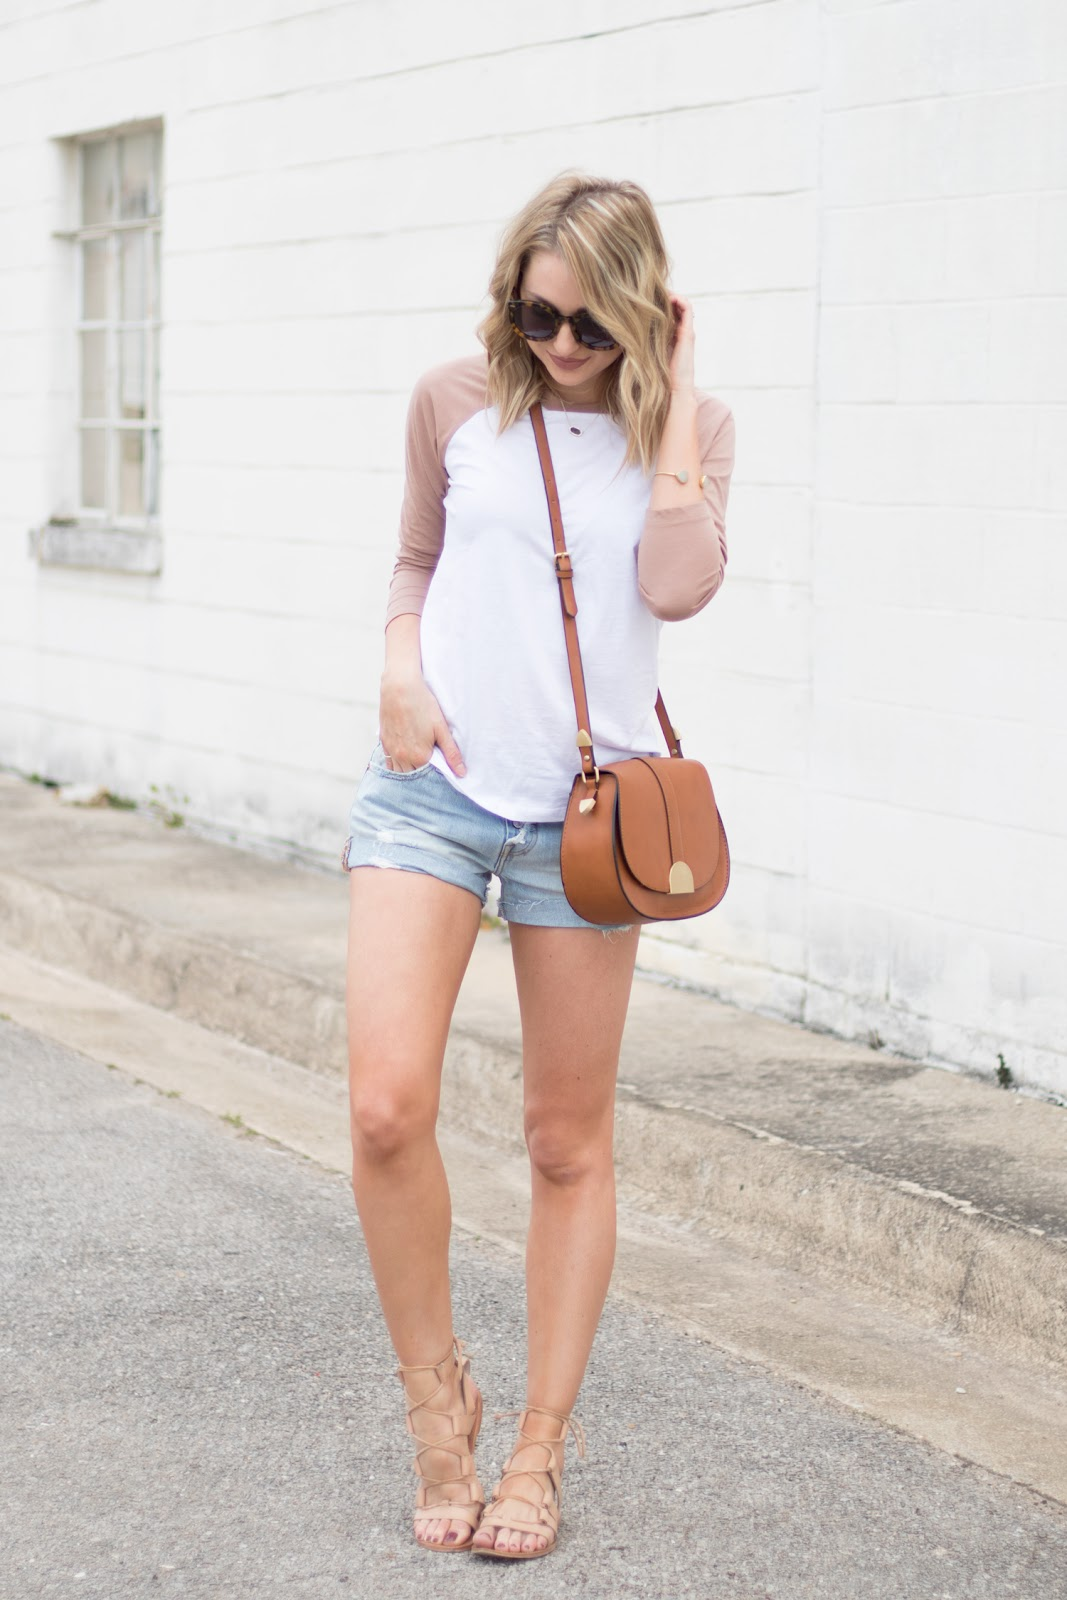 Spring t-shirt and shorts combo